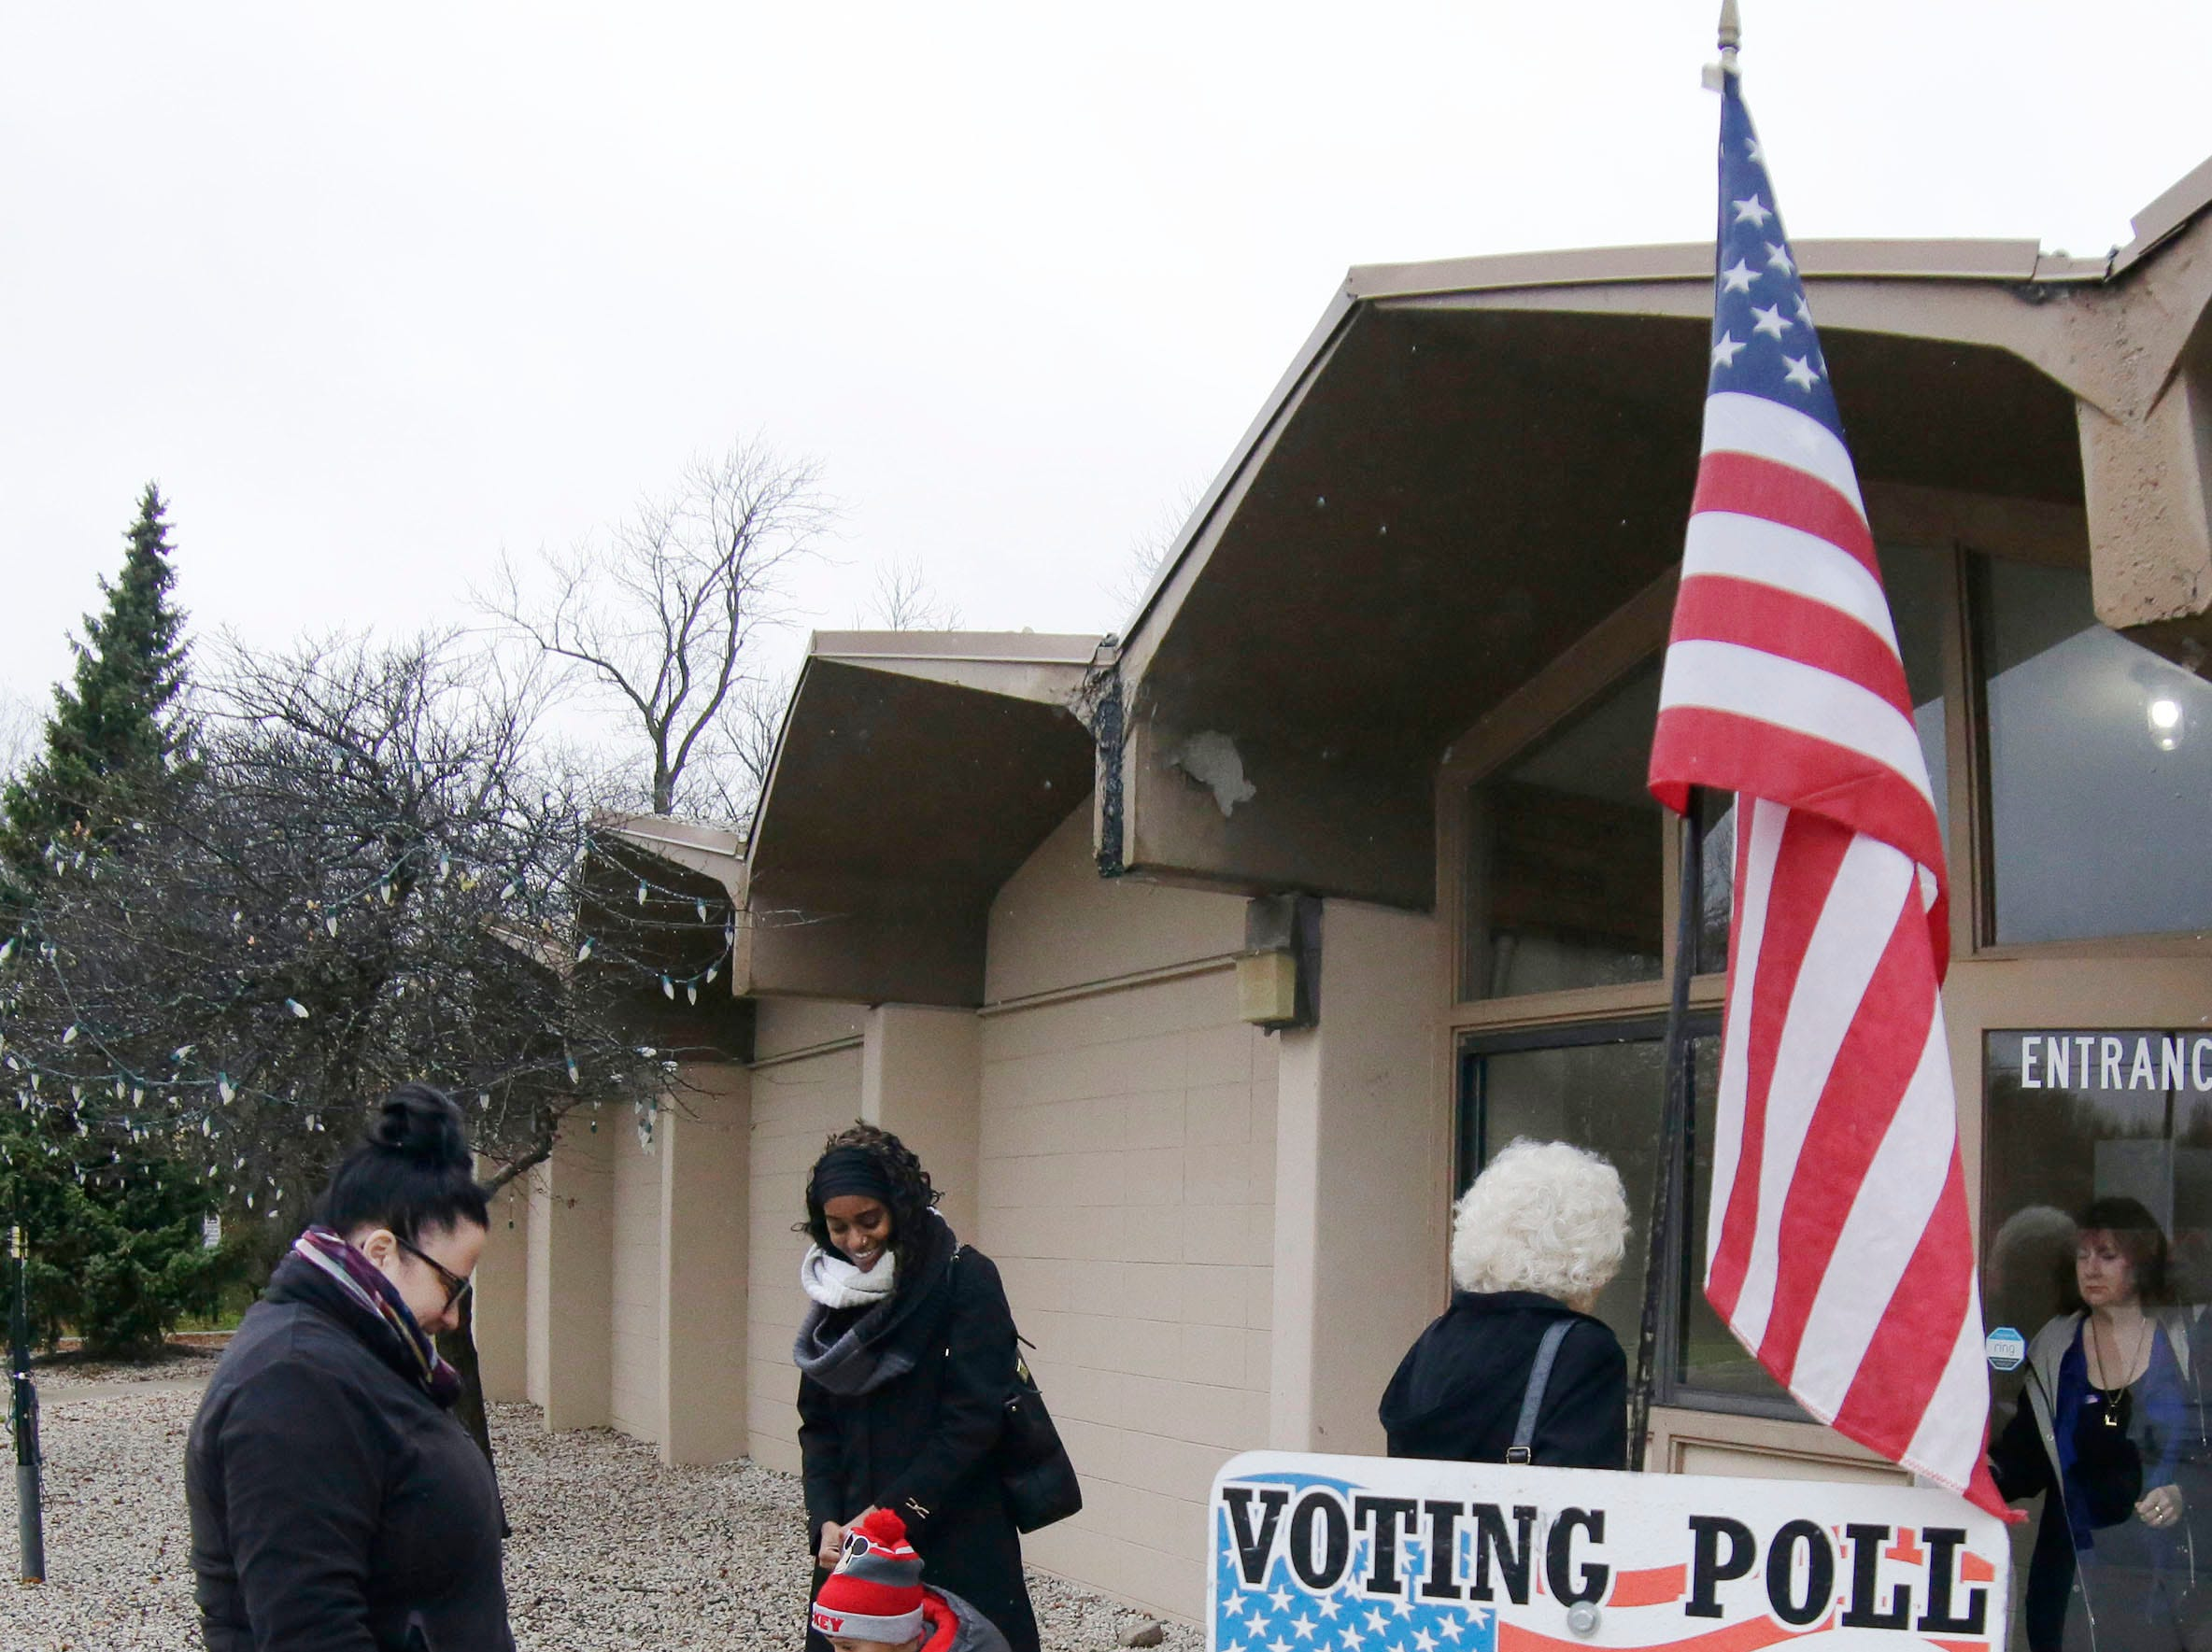 Voters exit and arrive at the Quarryview Center polling place, Tuesday, November 6, 2018, in Sheboygan, Wis.